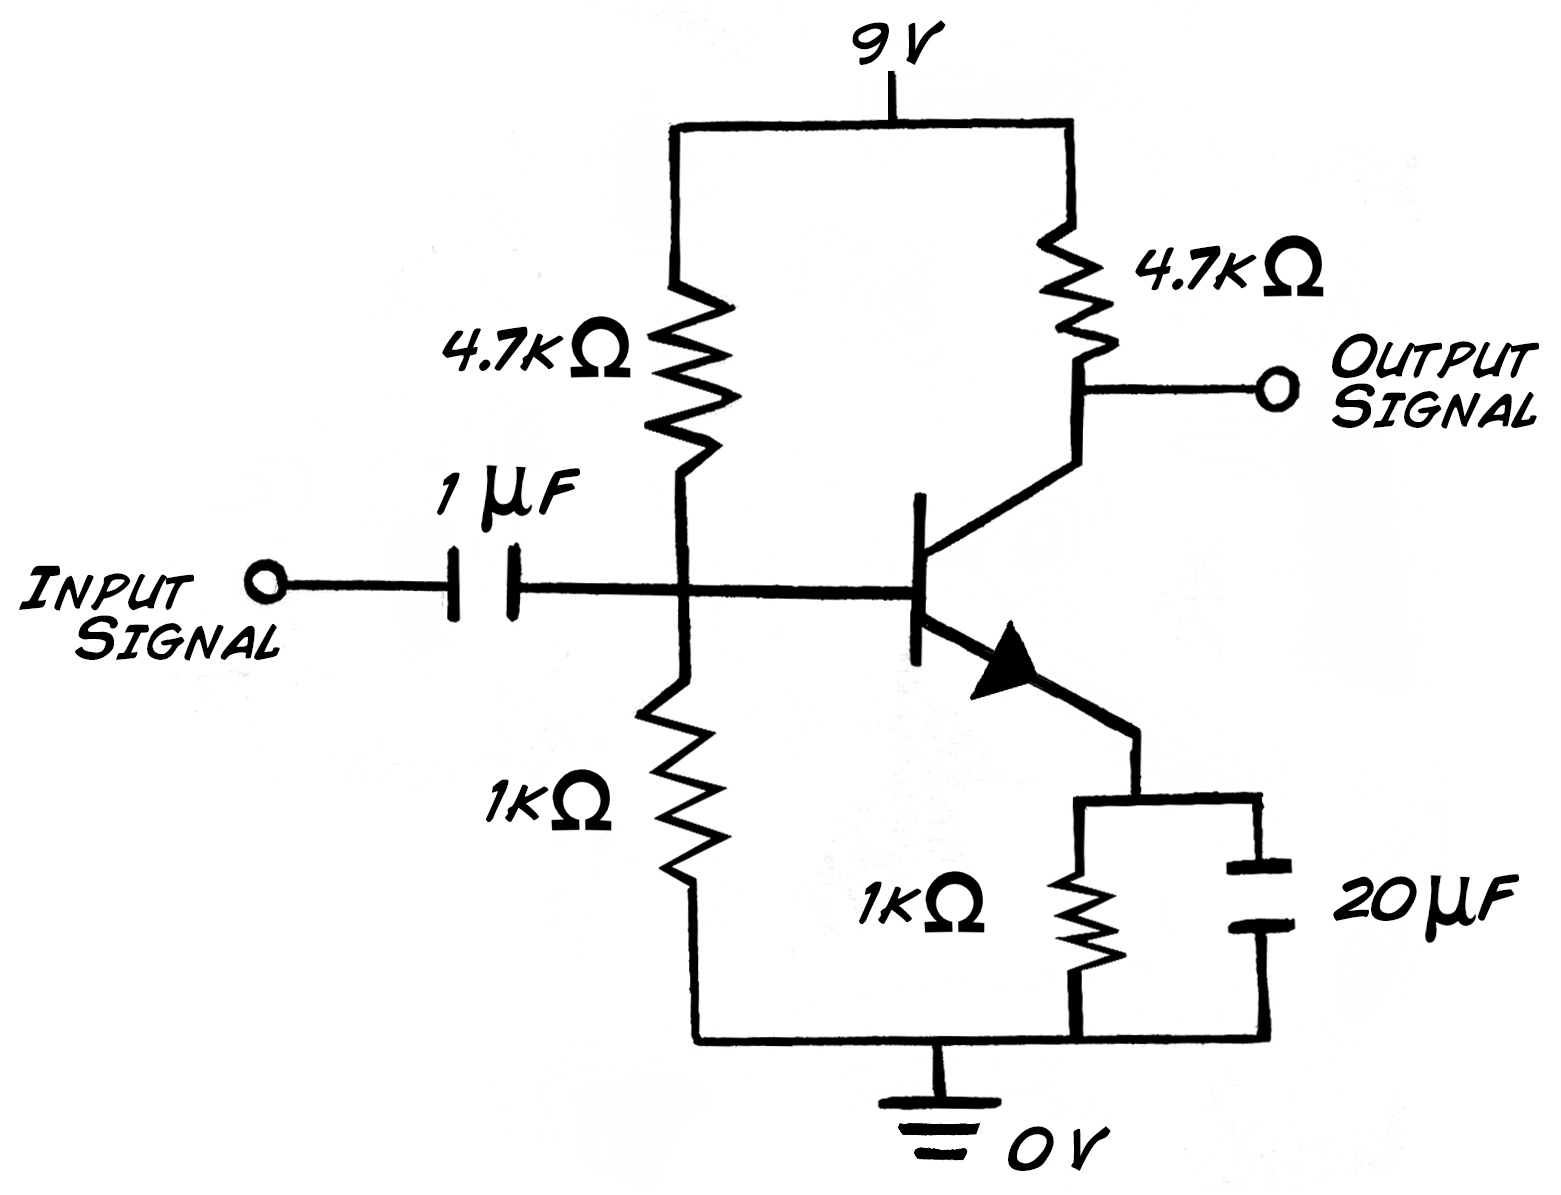 Experiment Transistor Circuit Design Supplycircuit Adjustableconstantcurrentsourcecircuitdiagram